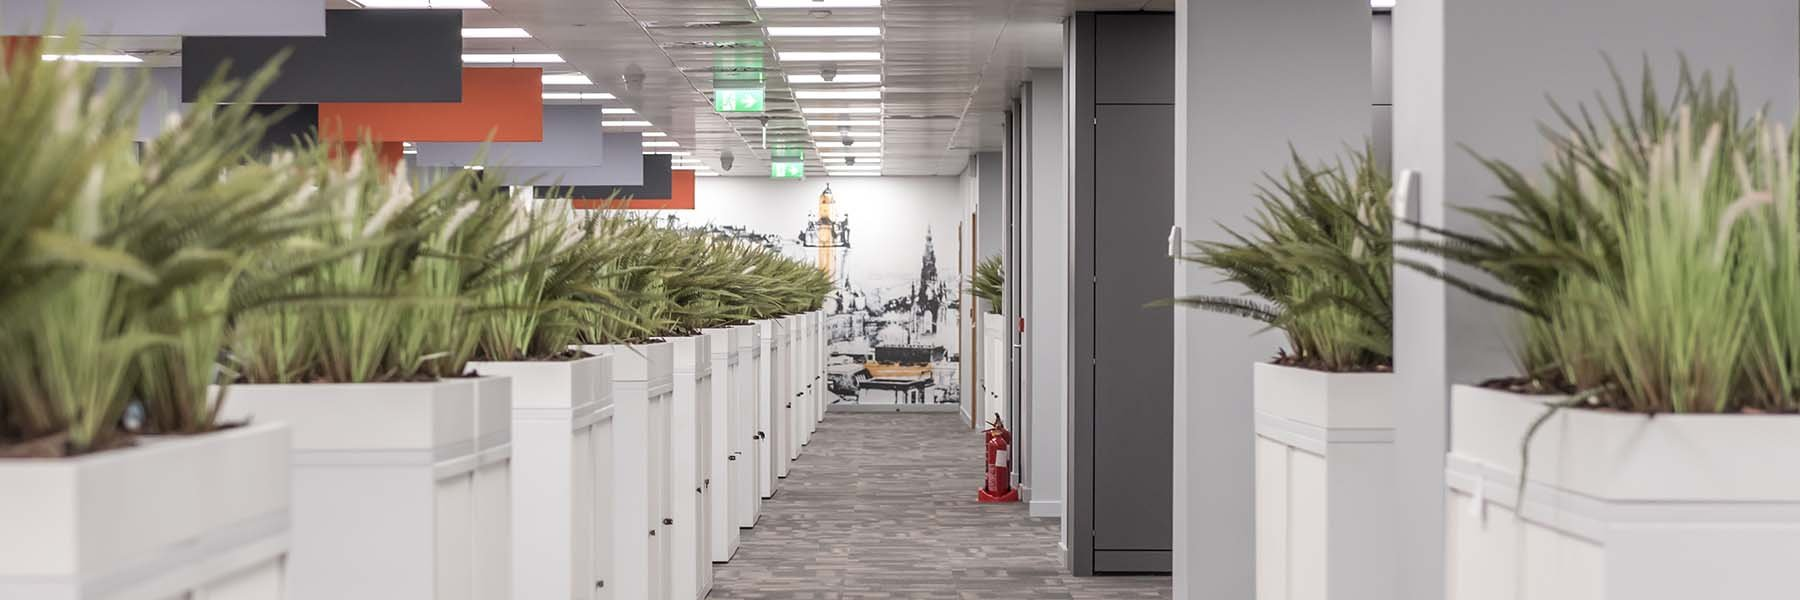 A modern office walkway created by white cabinet top planters with storage filled with live sansevieria plants